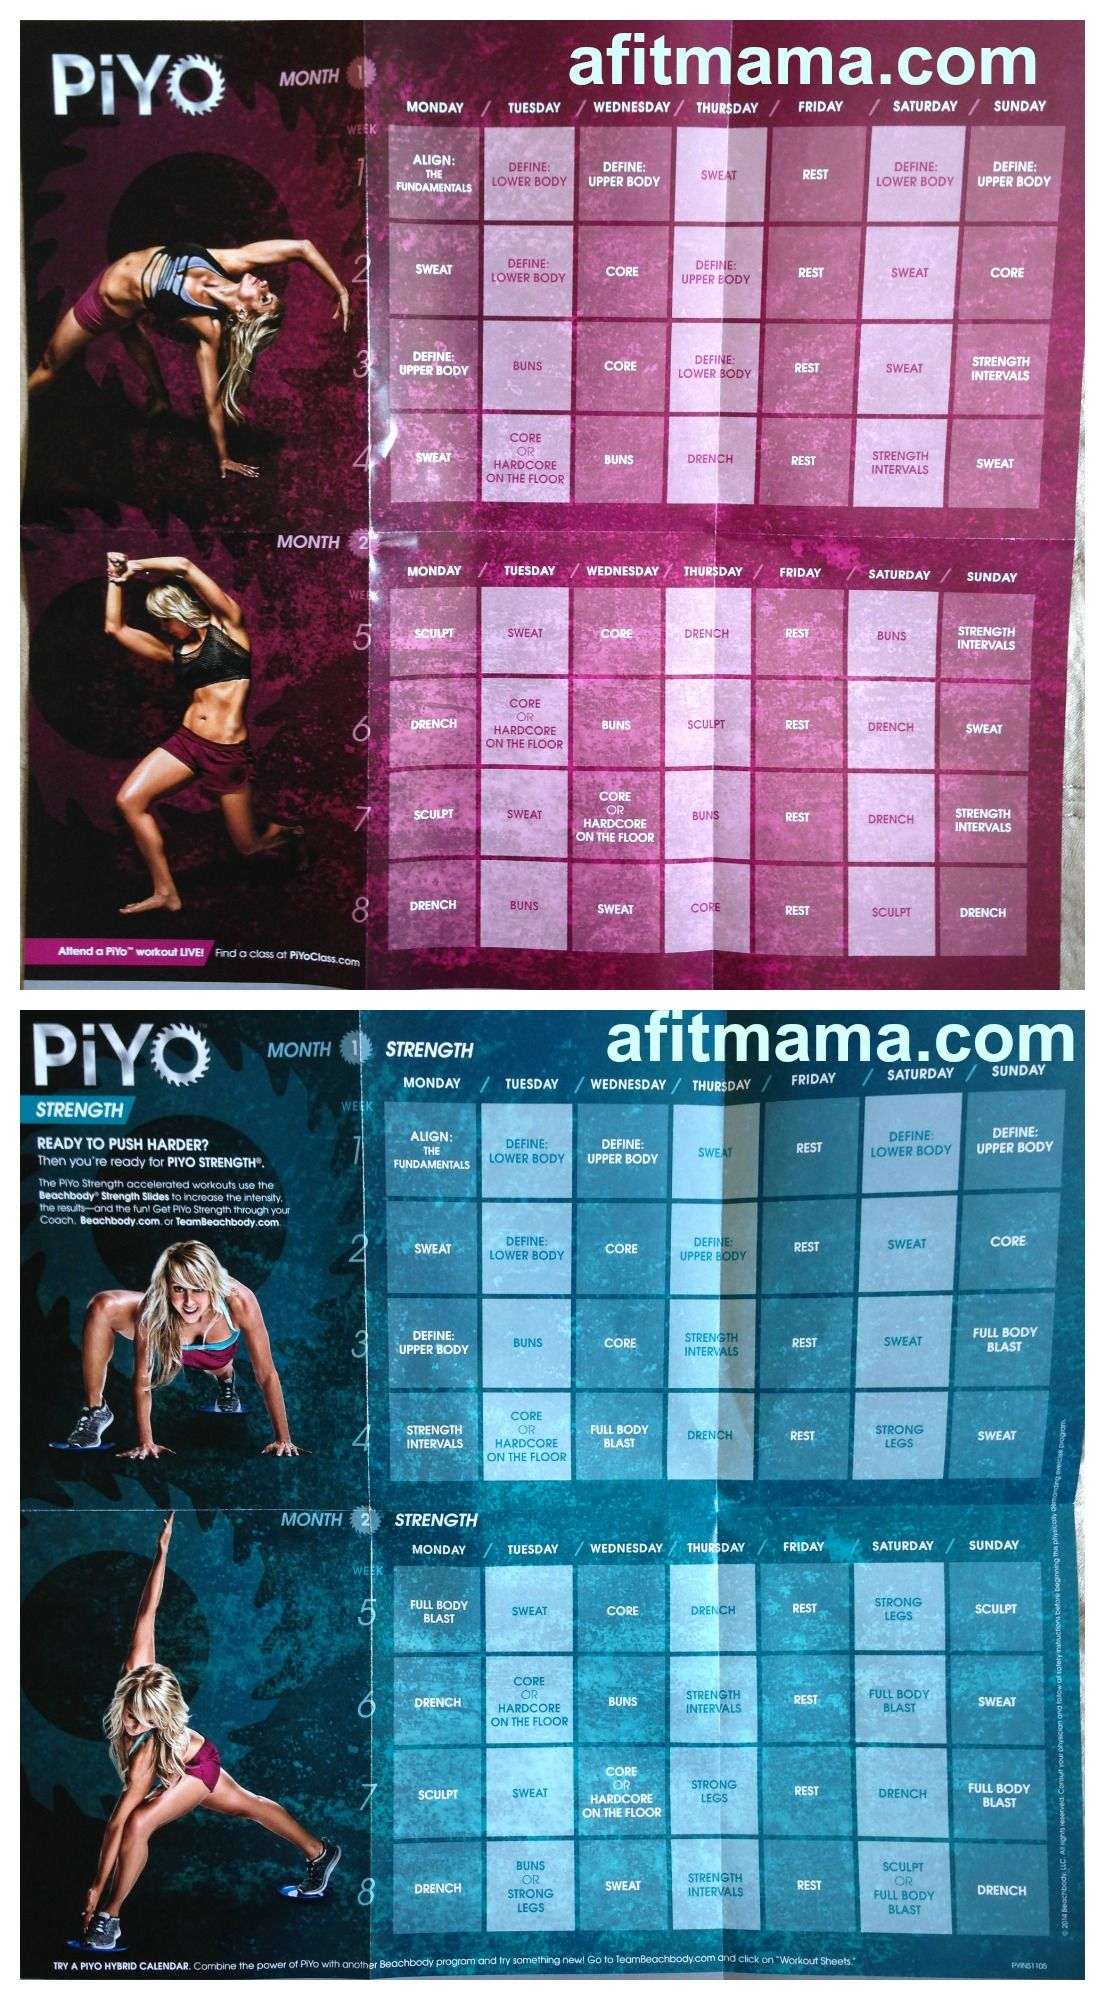 PiYo Workout Schedule and Calendar | Health | Pinterest | Piyo ...